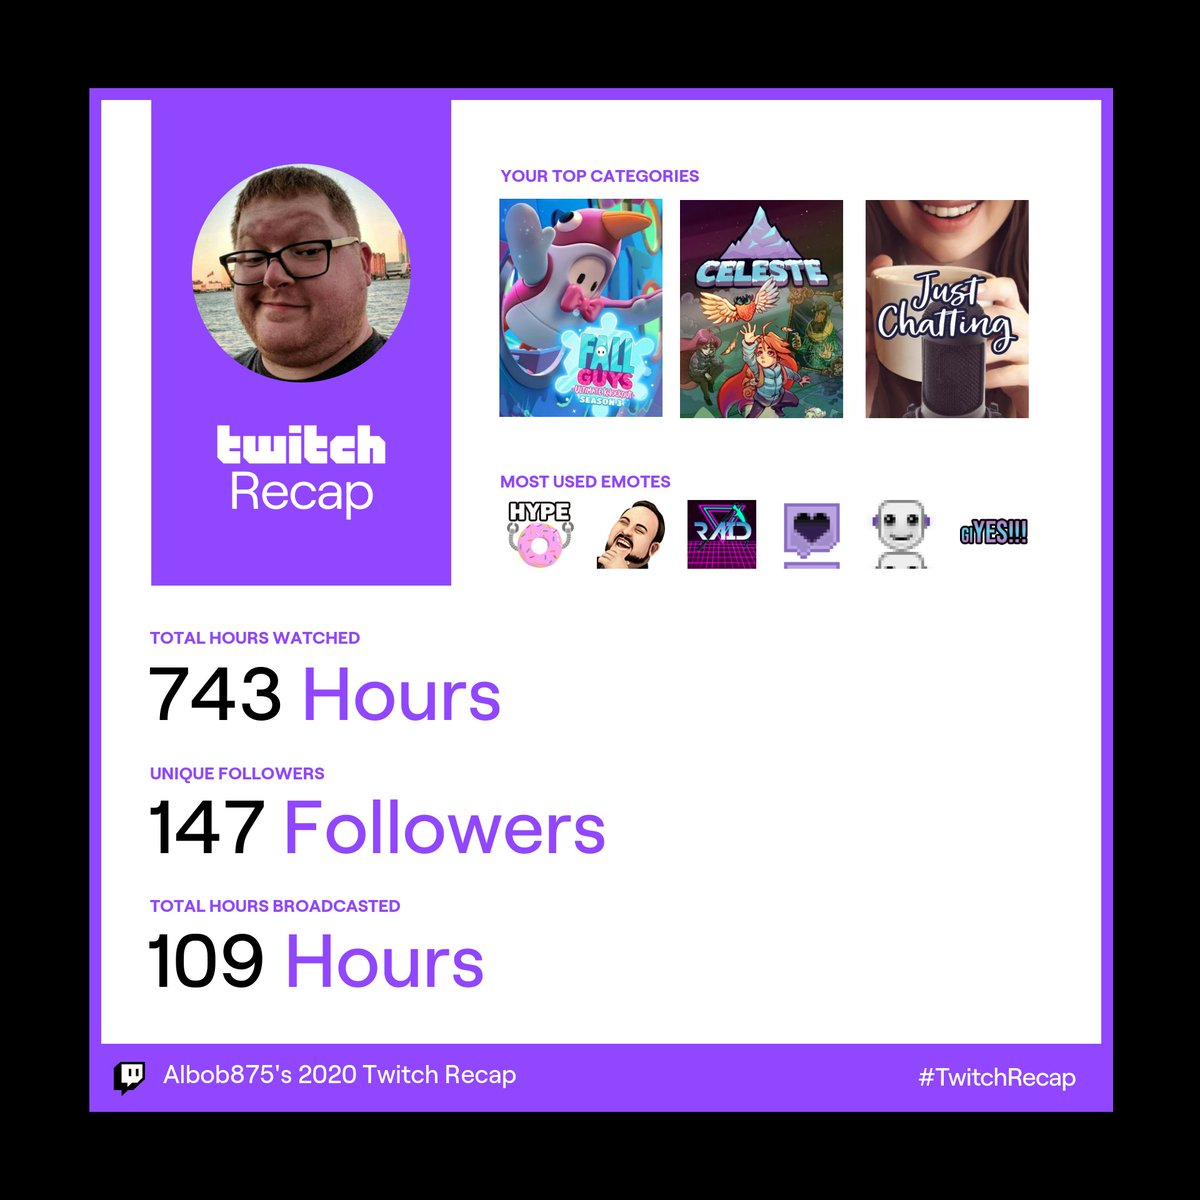 Finally got my broadcaster #TwitchRecap   What a 7 months it has been!